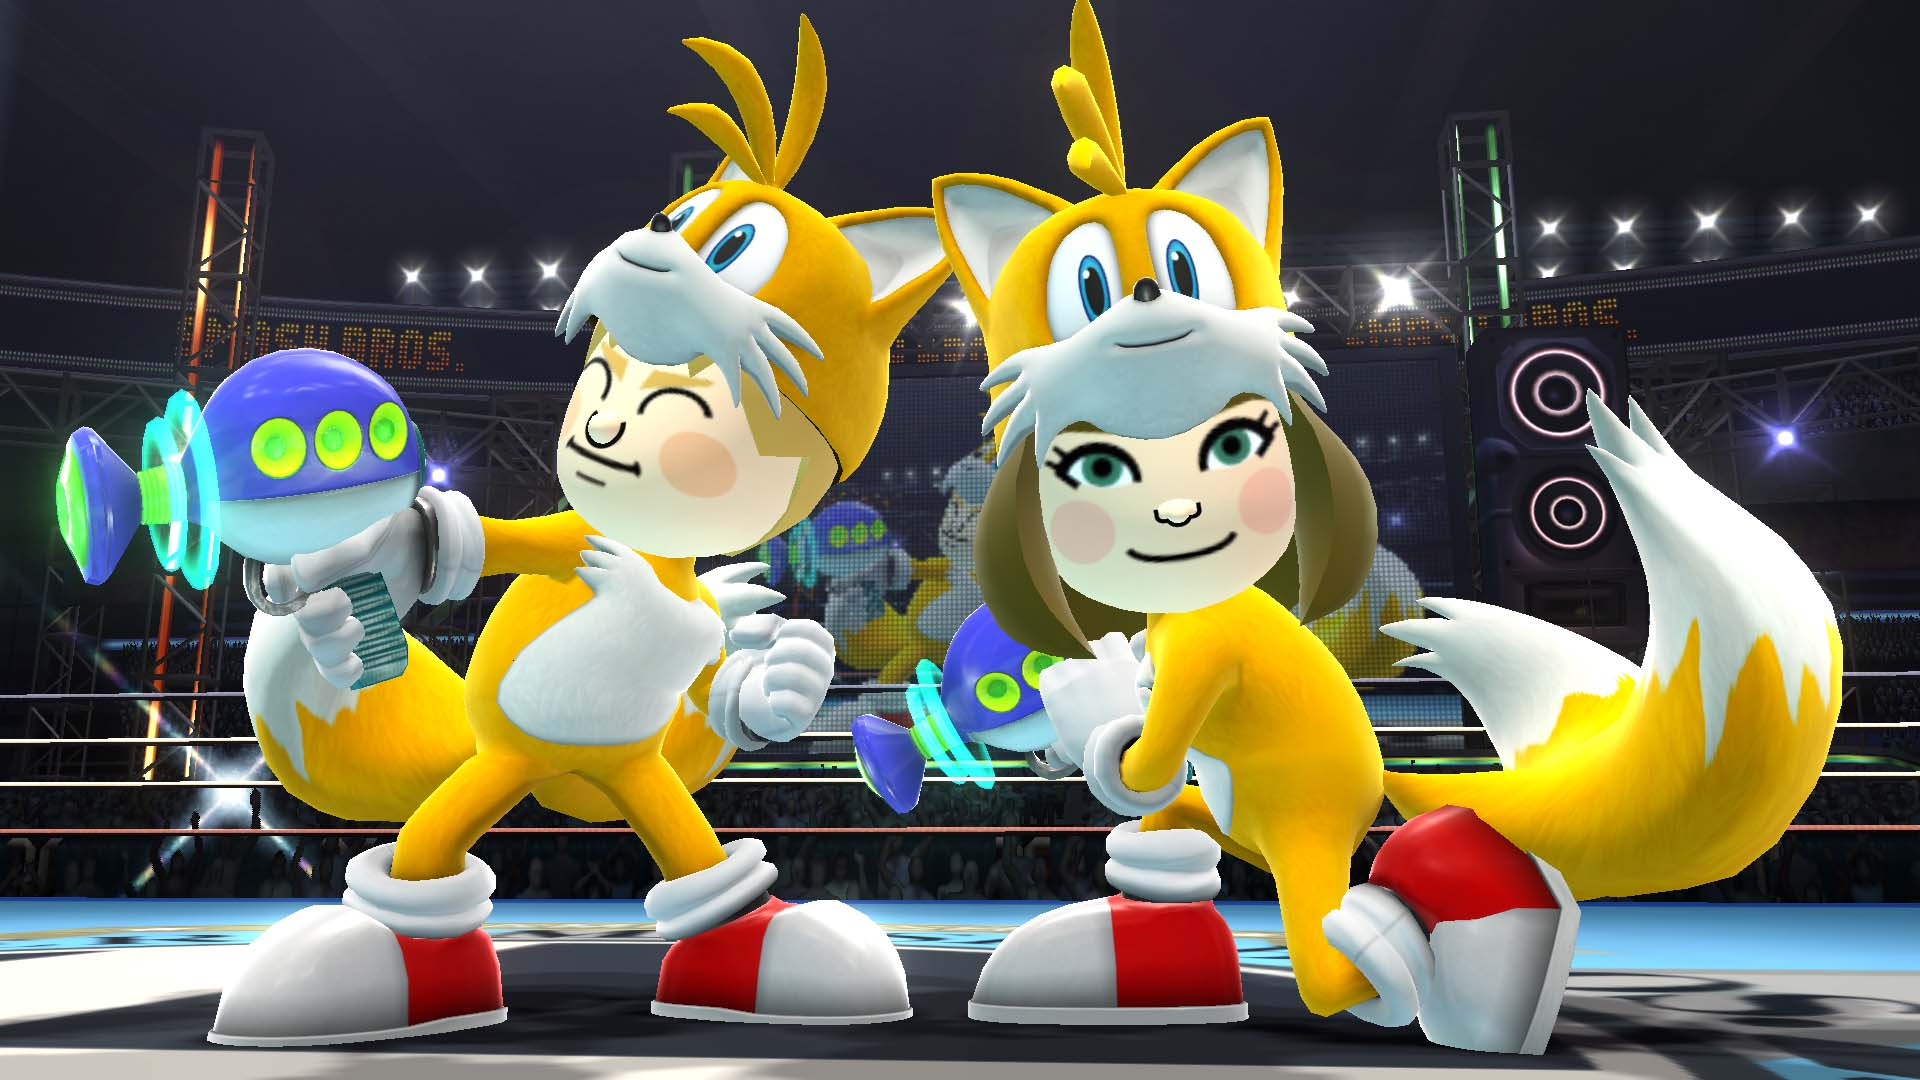 Tons of Tails & Knuckles Mii Fighter Screenshots for Smash Bros Wii U/3DS